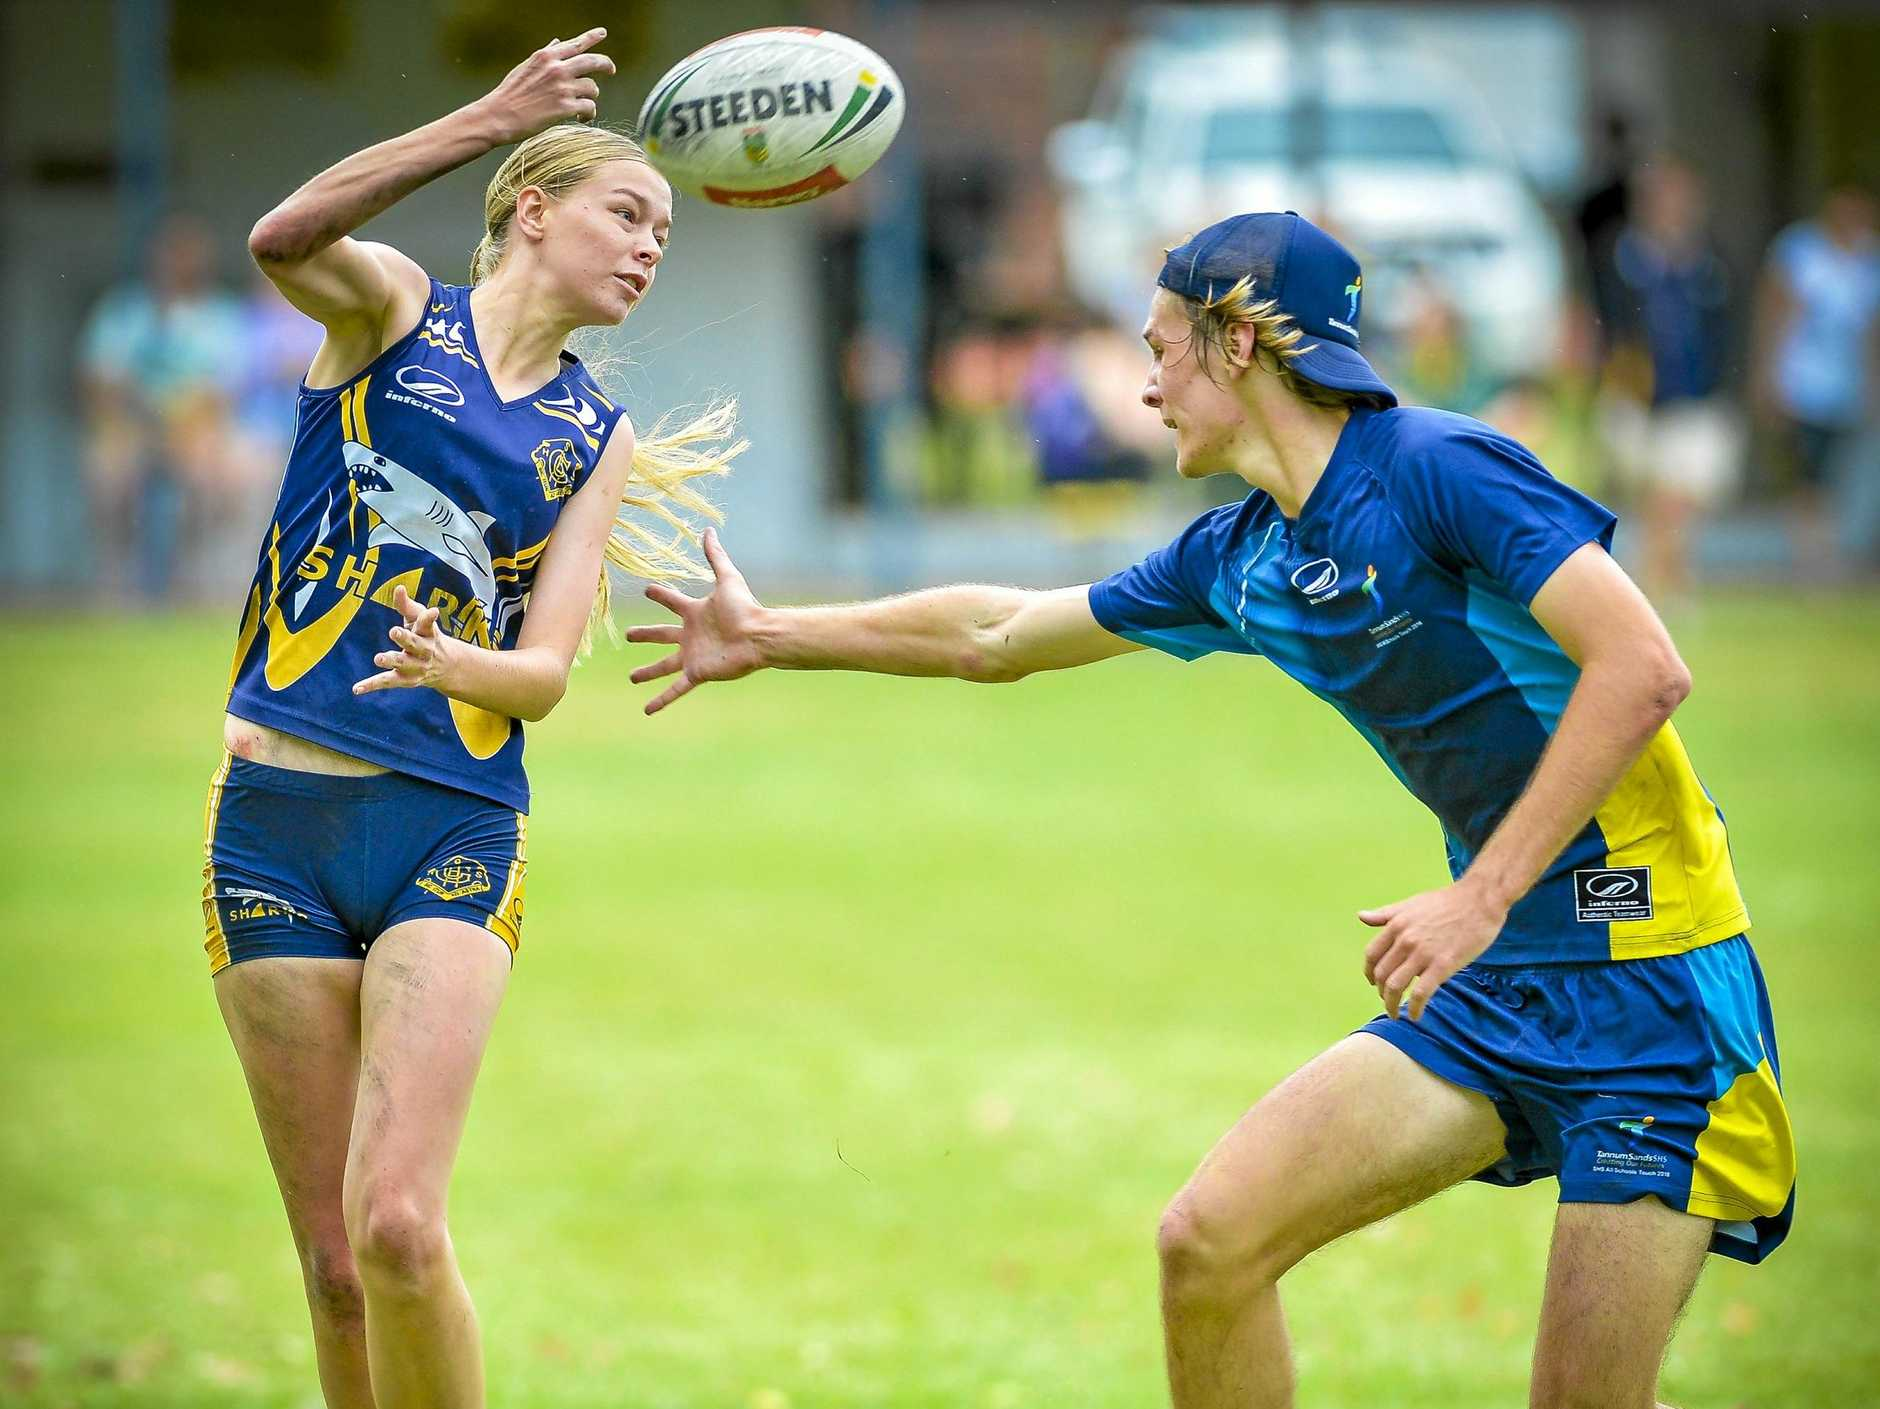 SLIPPERY SHARK: Georgie Hare from State High Sharks avoids a touch from Ferguson Comrie in the Gladstone Touch Association Mixed Division 2 grand final against Tannum Sands SHS.